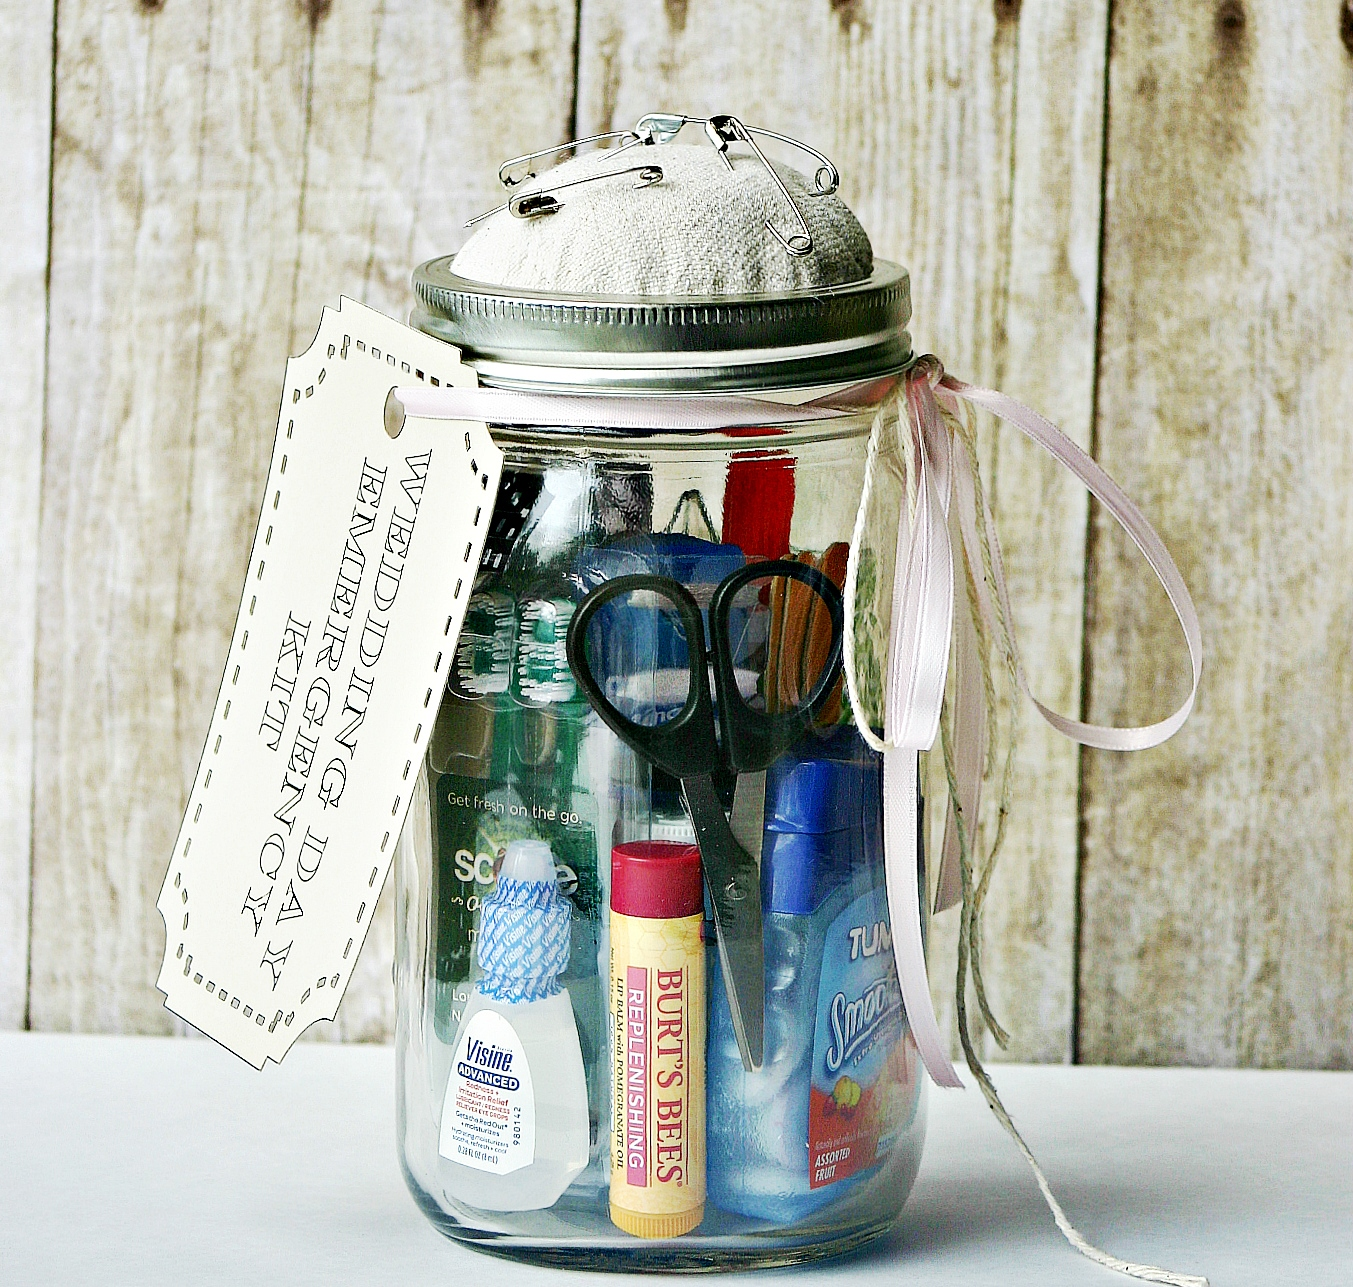 The Wedding Day Survival Kit